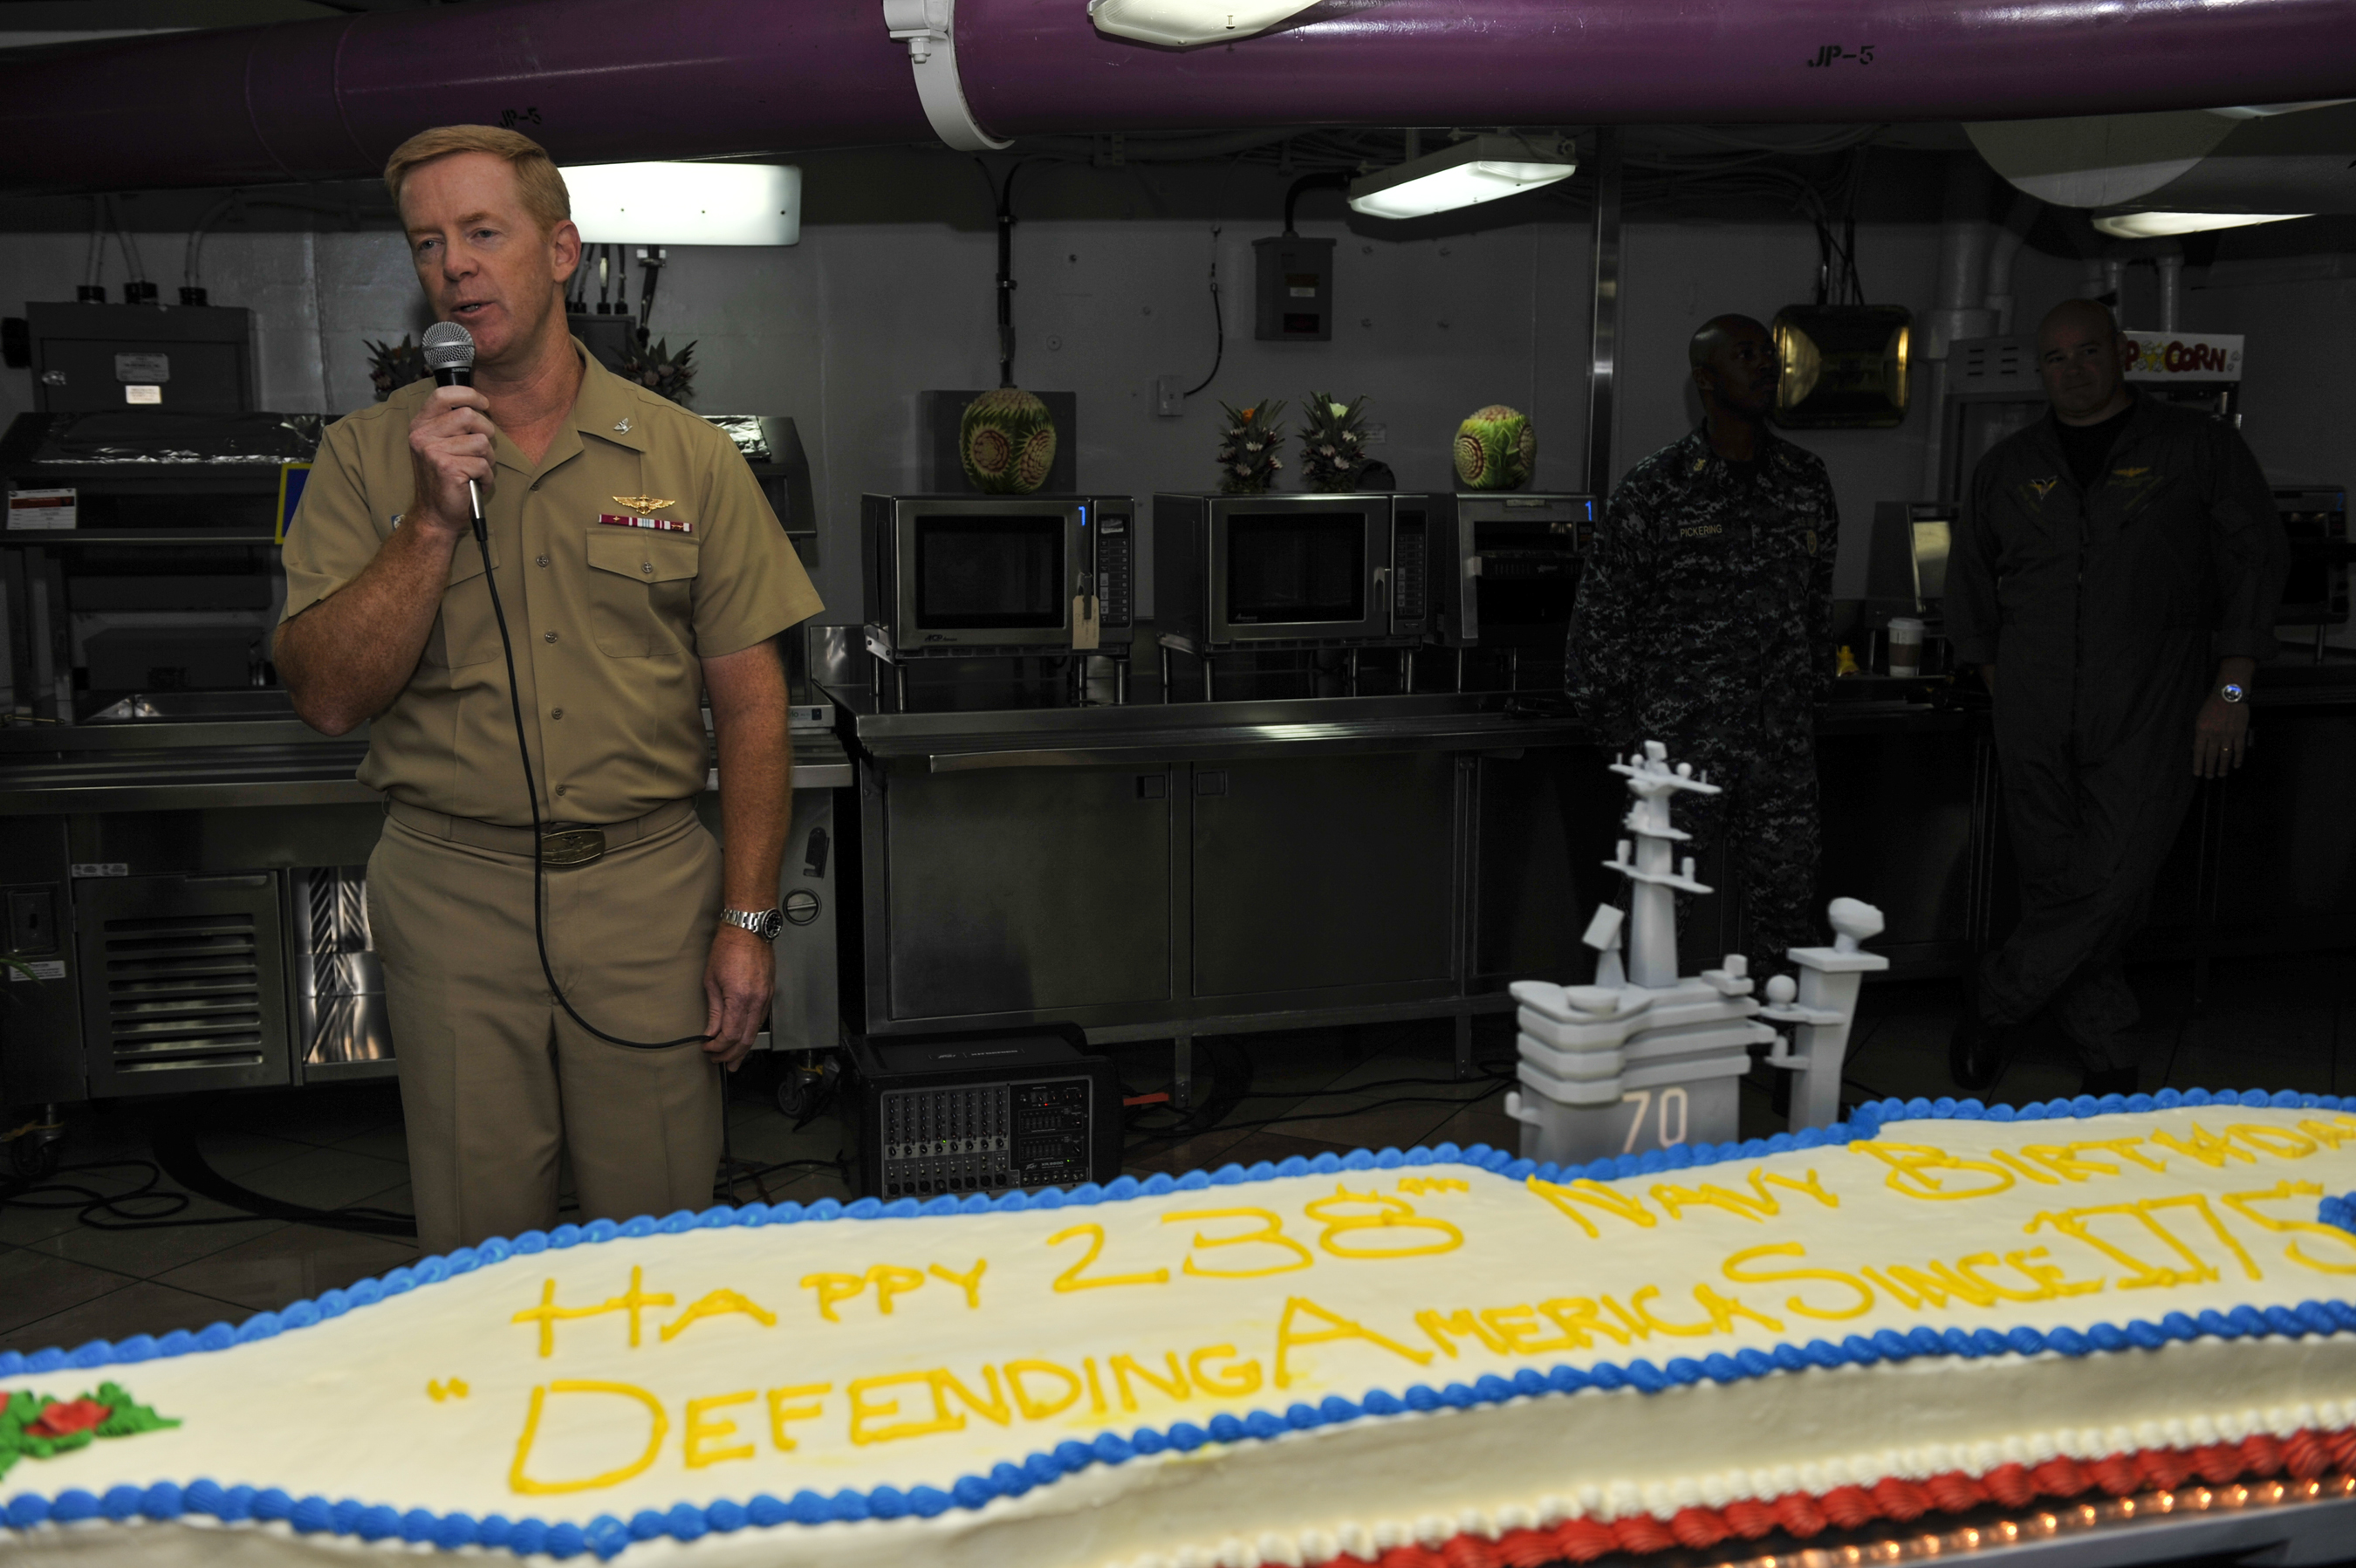 USS Carl Vinson's (CVN 70) commanding officer Capt. Kent Whalen address the crew during a cake cutting celebrating the Navy's 238th birthday. US Navy Photo